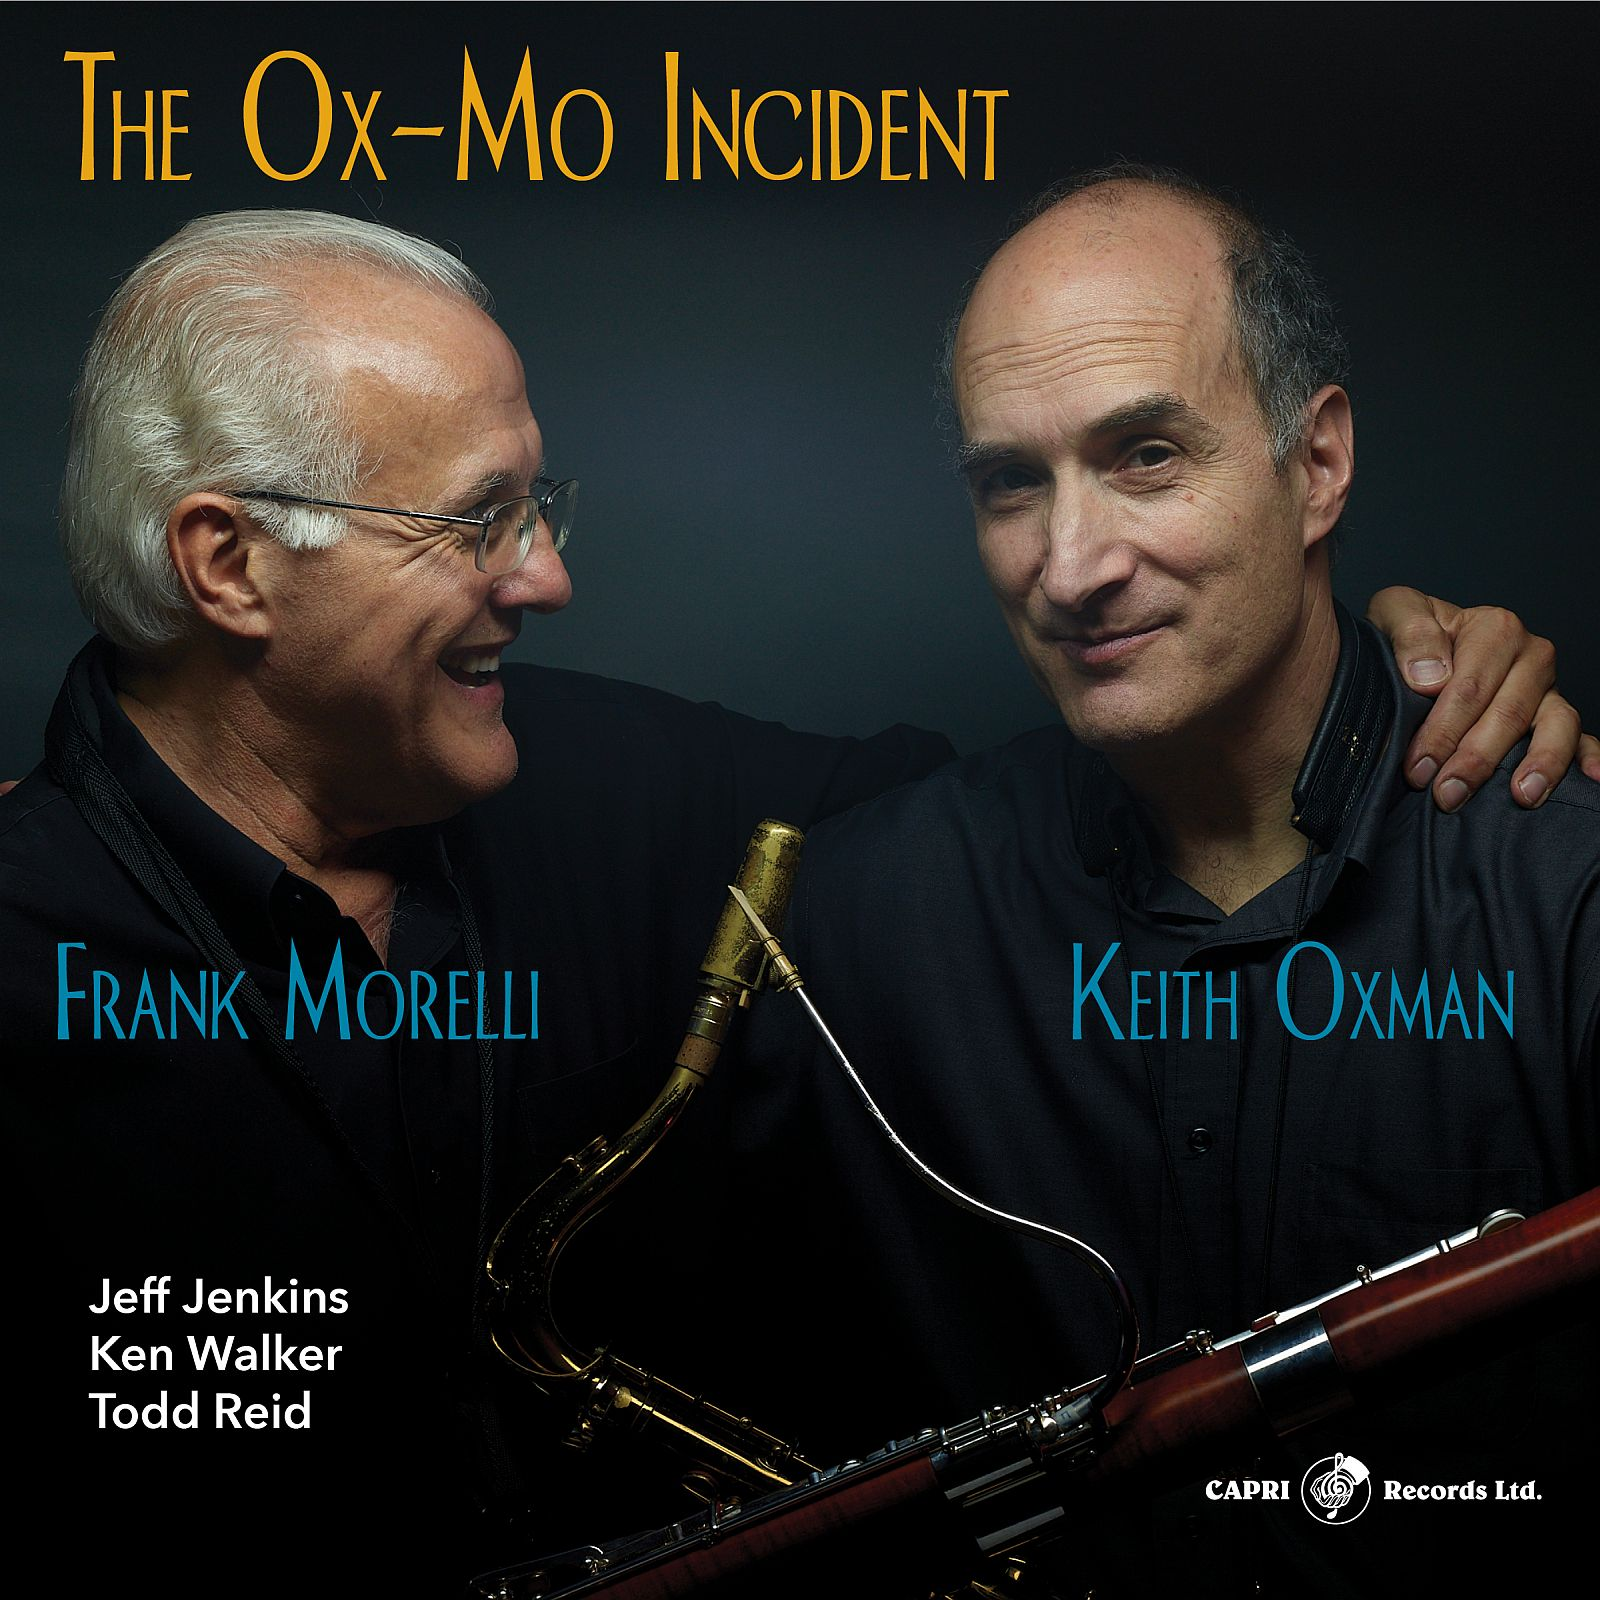 Ox-Mo_Incident_Cover_1600pix